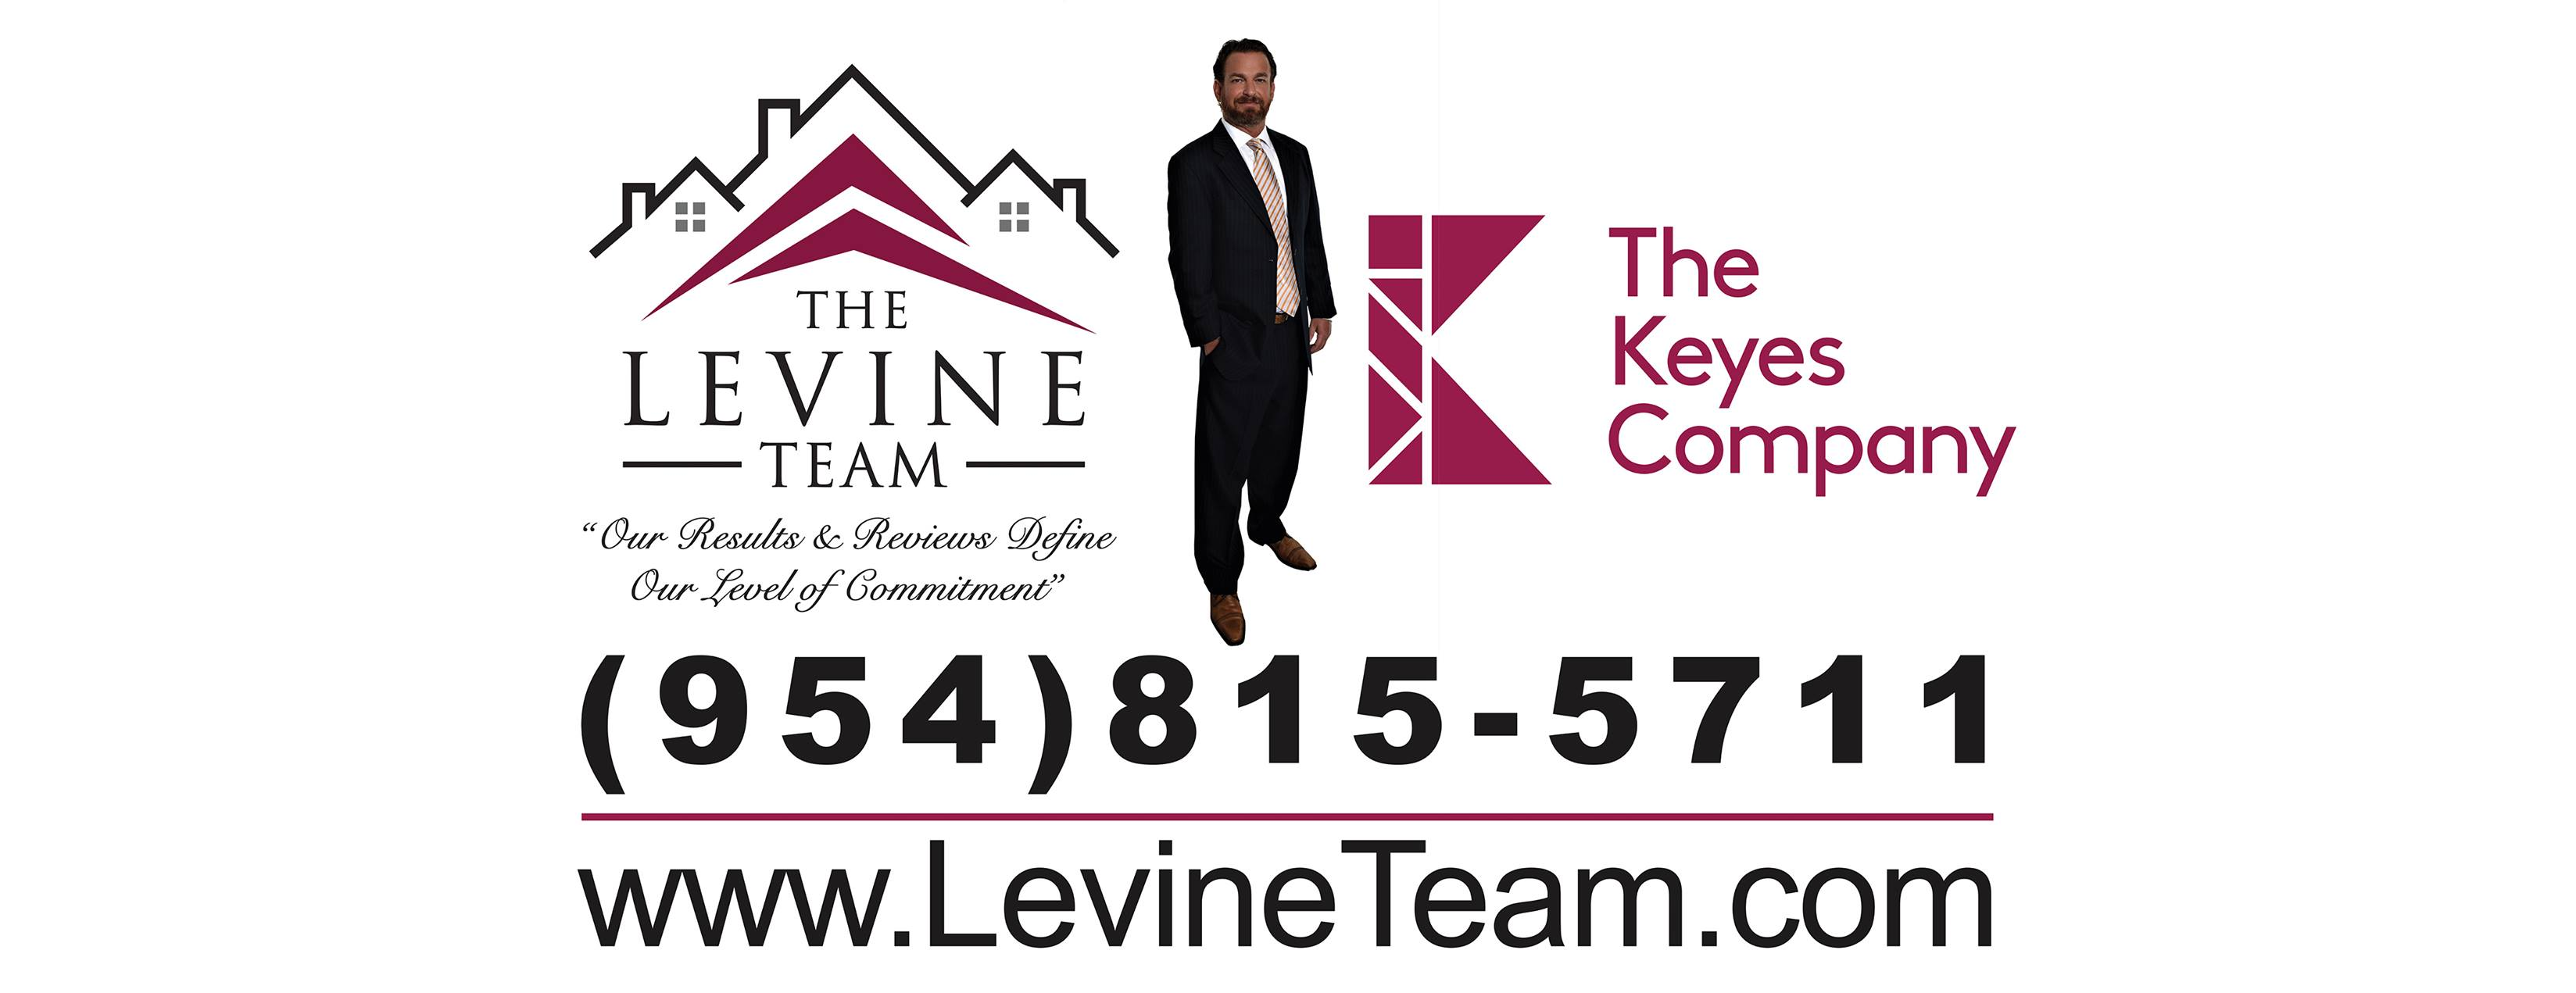 South Florida Real Estate Levine Team